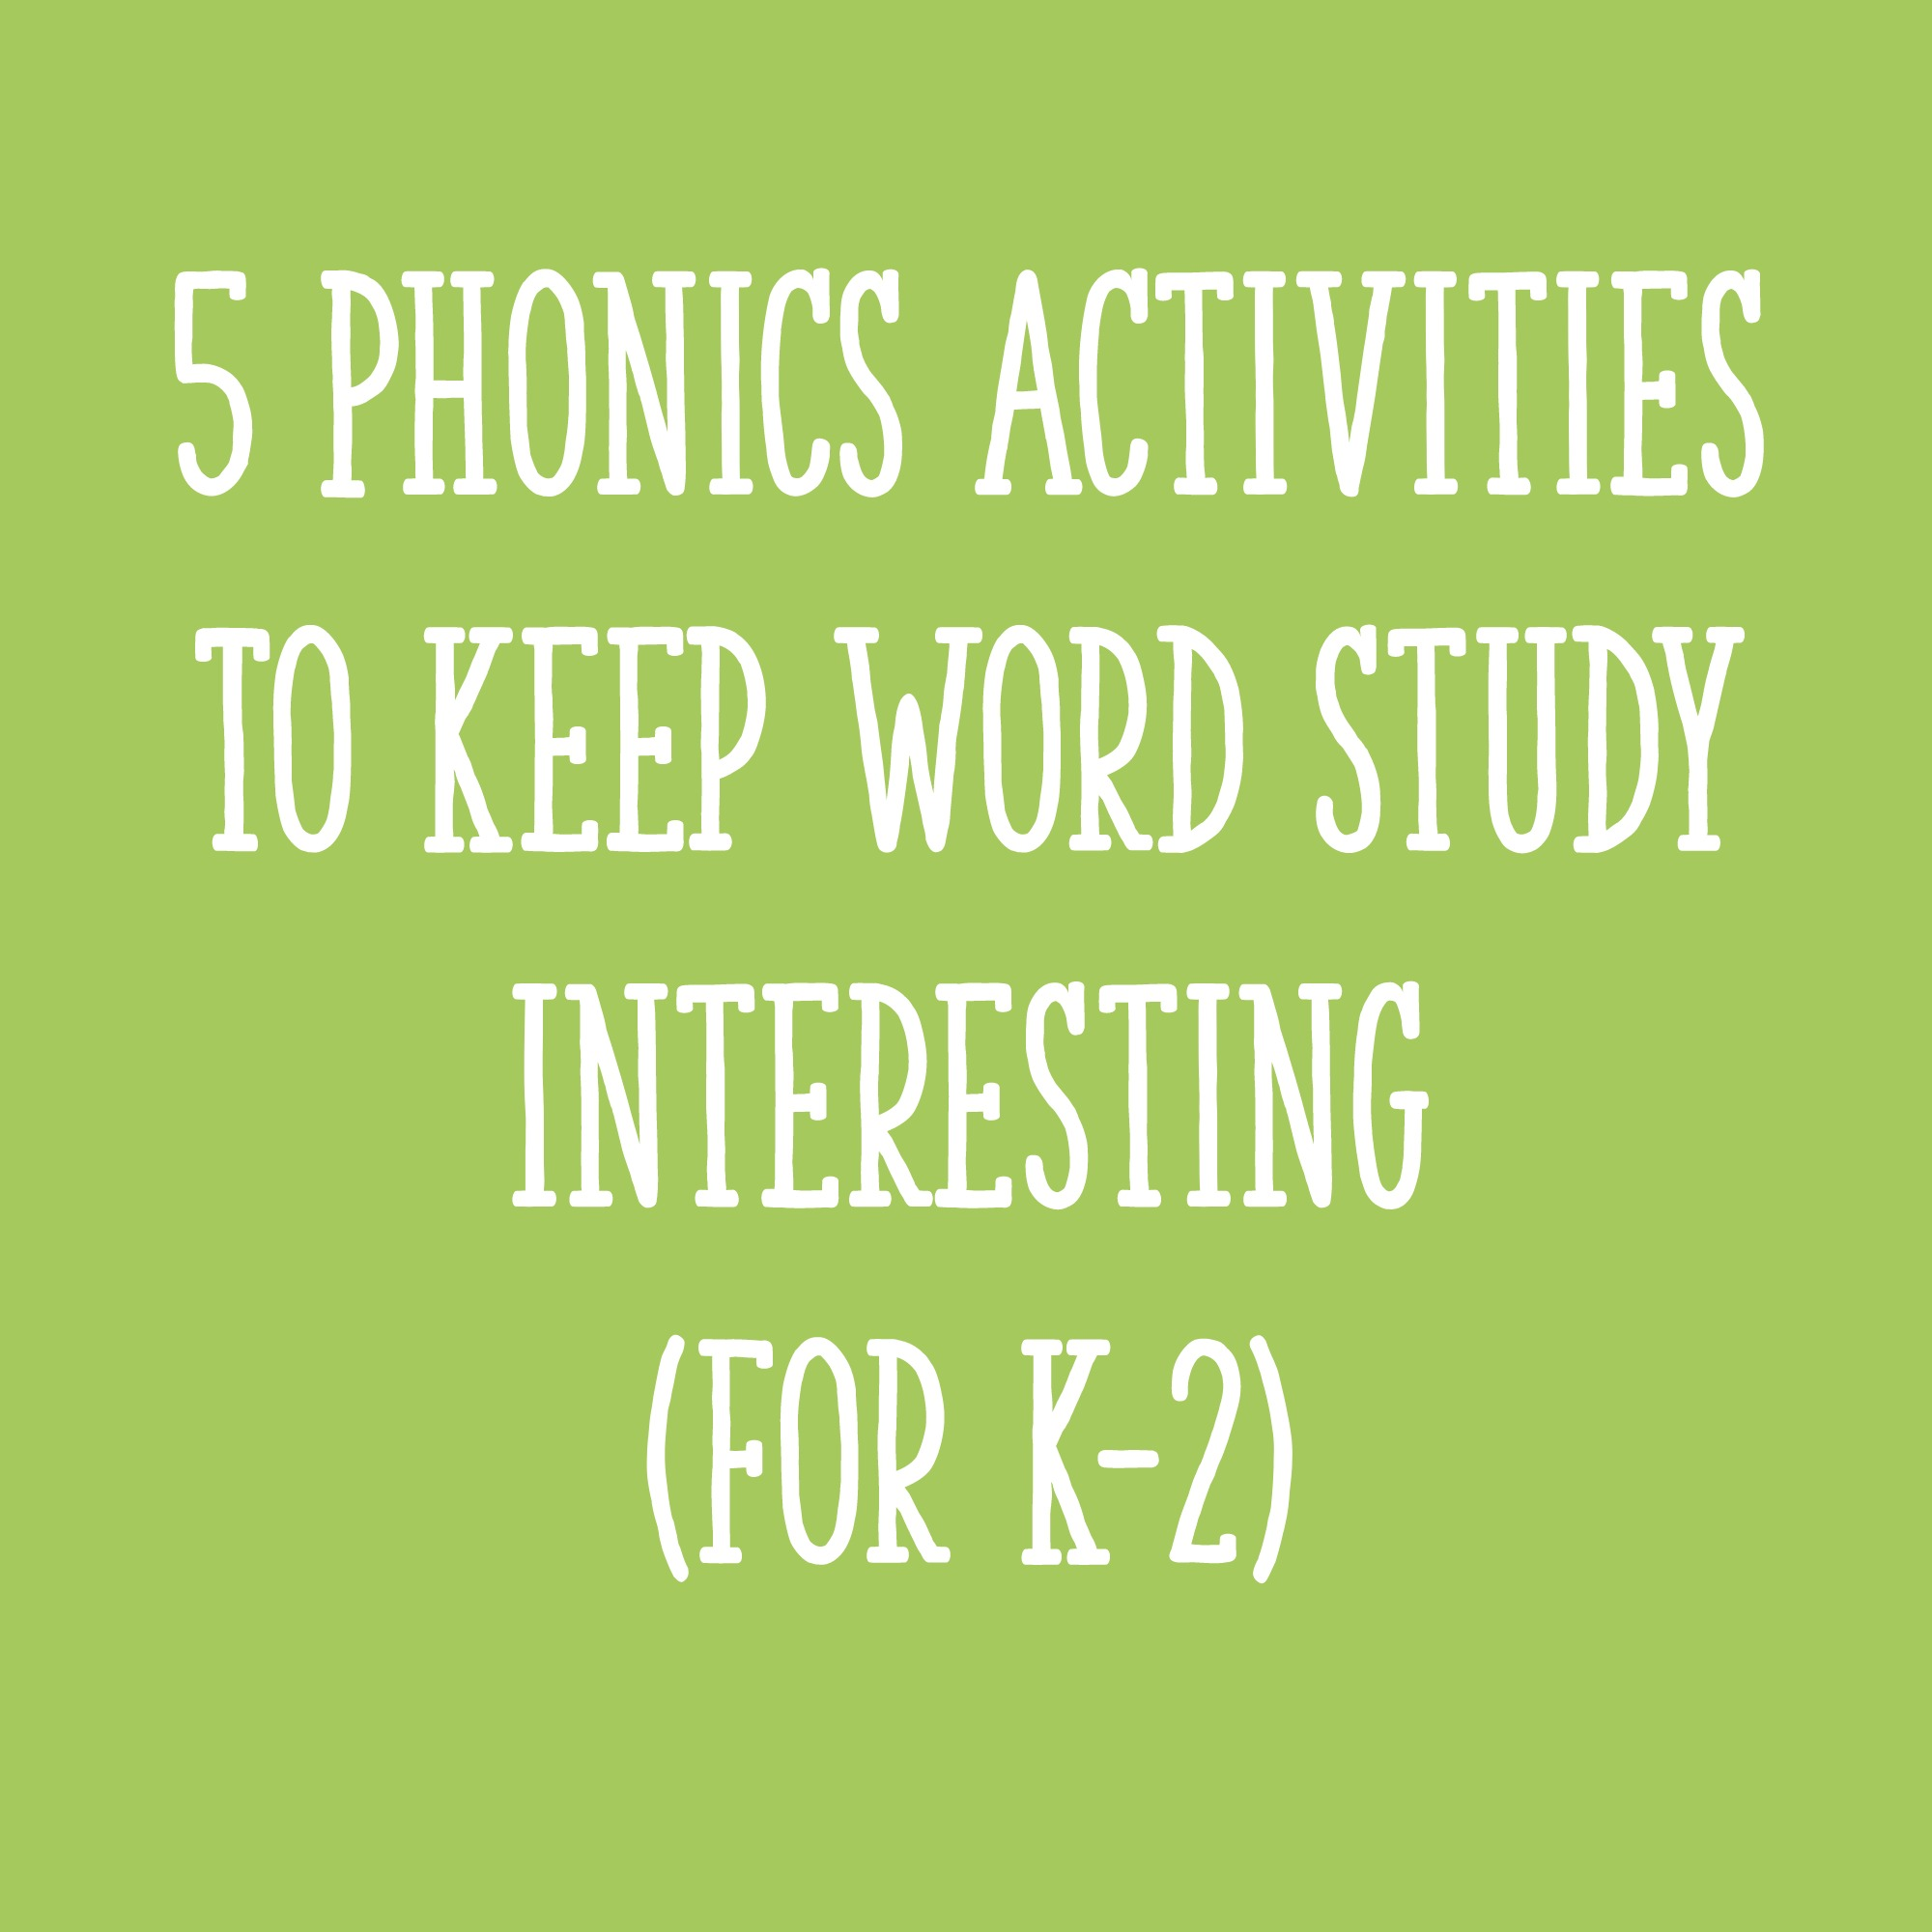 hight resolution of 5 Phonics Activities to Keep Word Study Interesting (for K-2) - Learning at  the Primary Pond